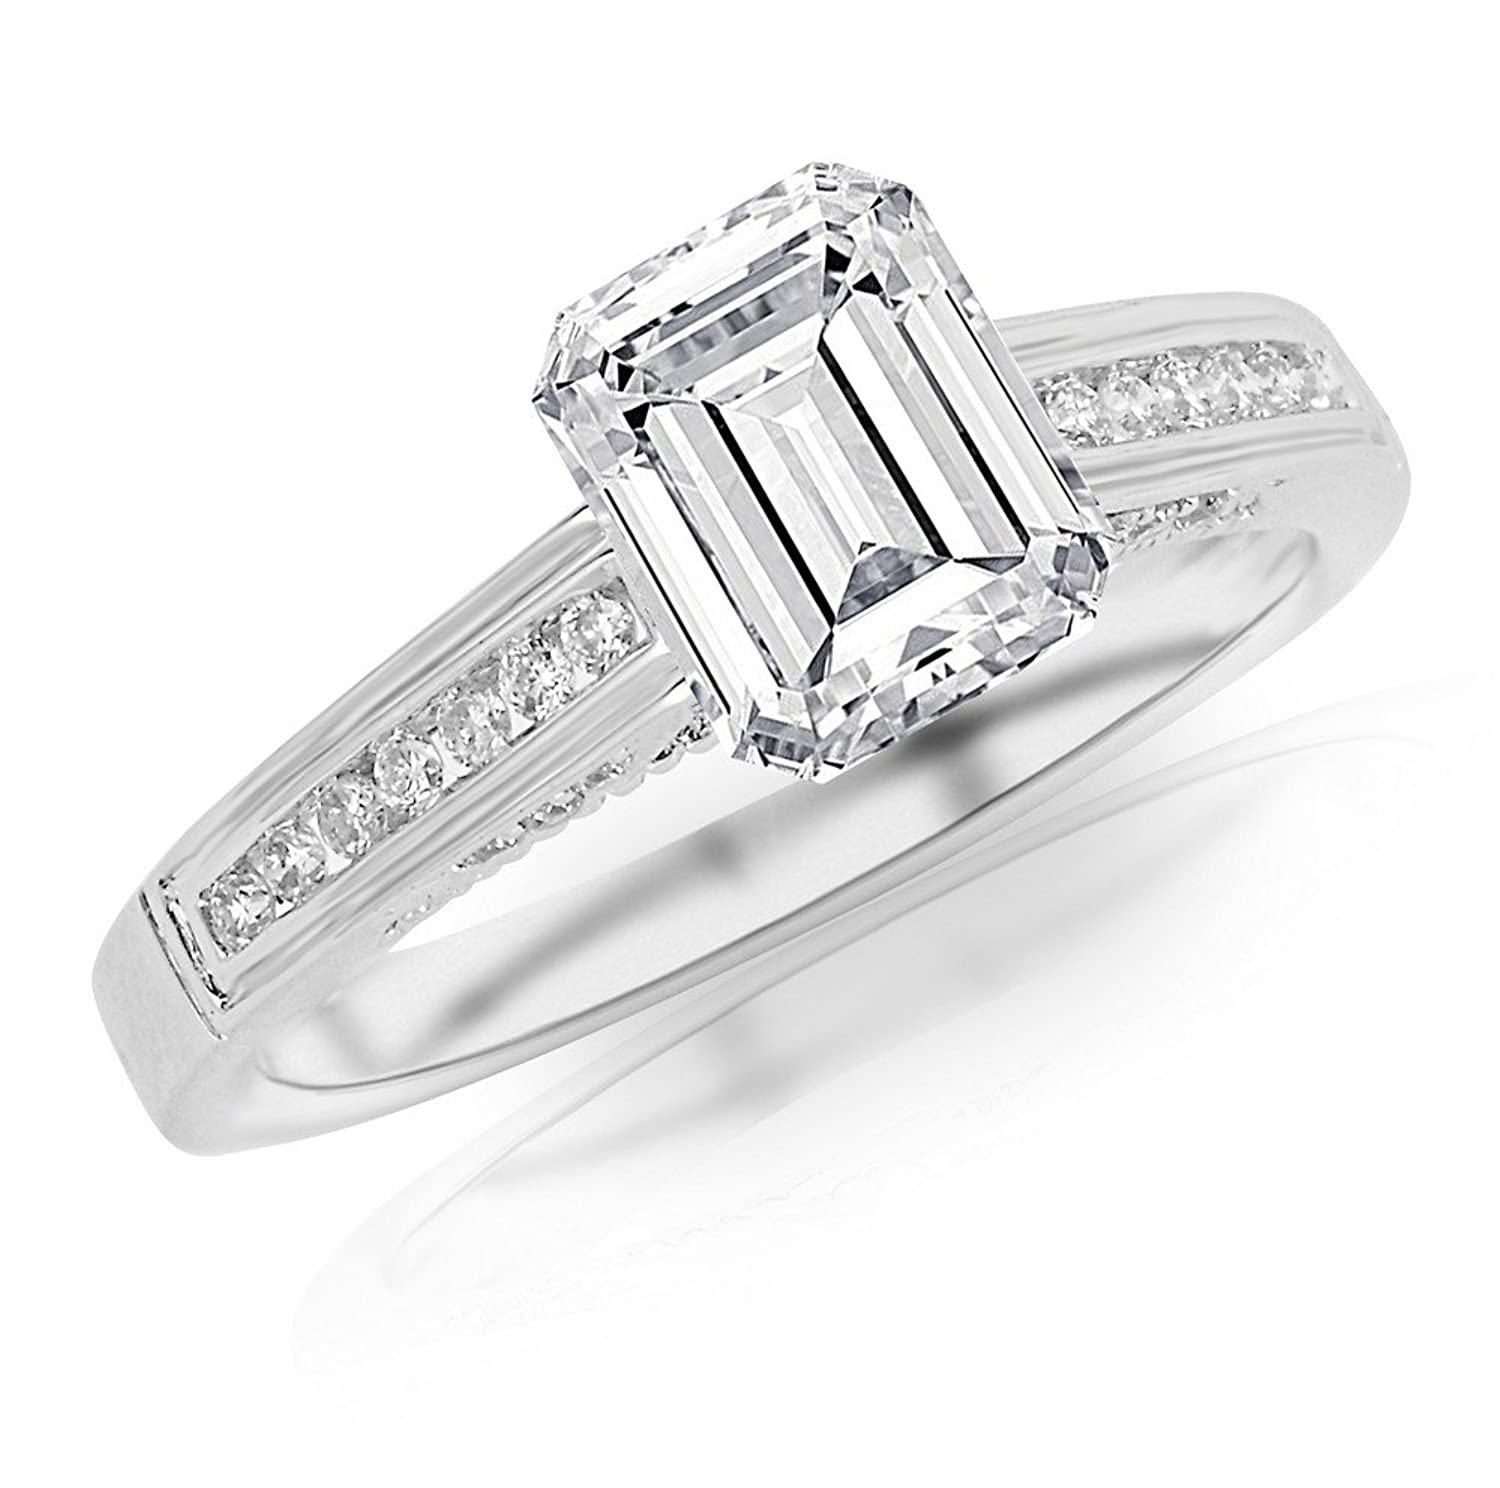 0.9 Cttw 14K White Gold Emerald Cut Channel Set Round Diamond Engagement Ring with a 0.7 Carat F-G Color VS1-VS2 Clarity Center